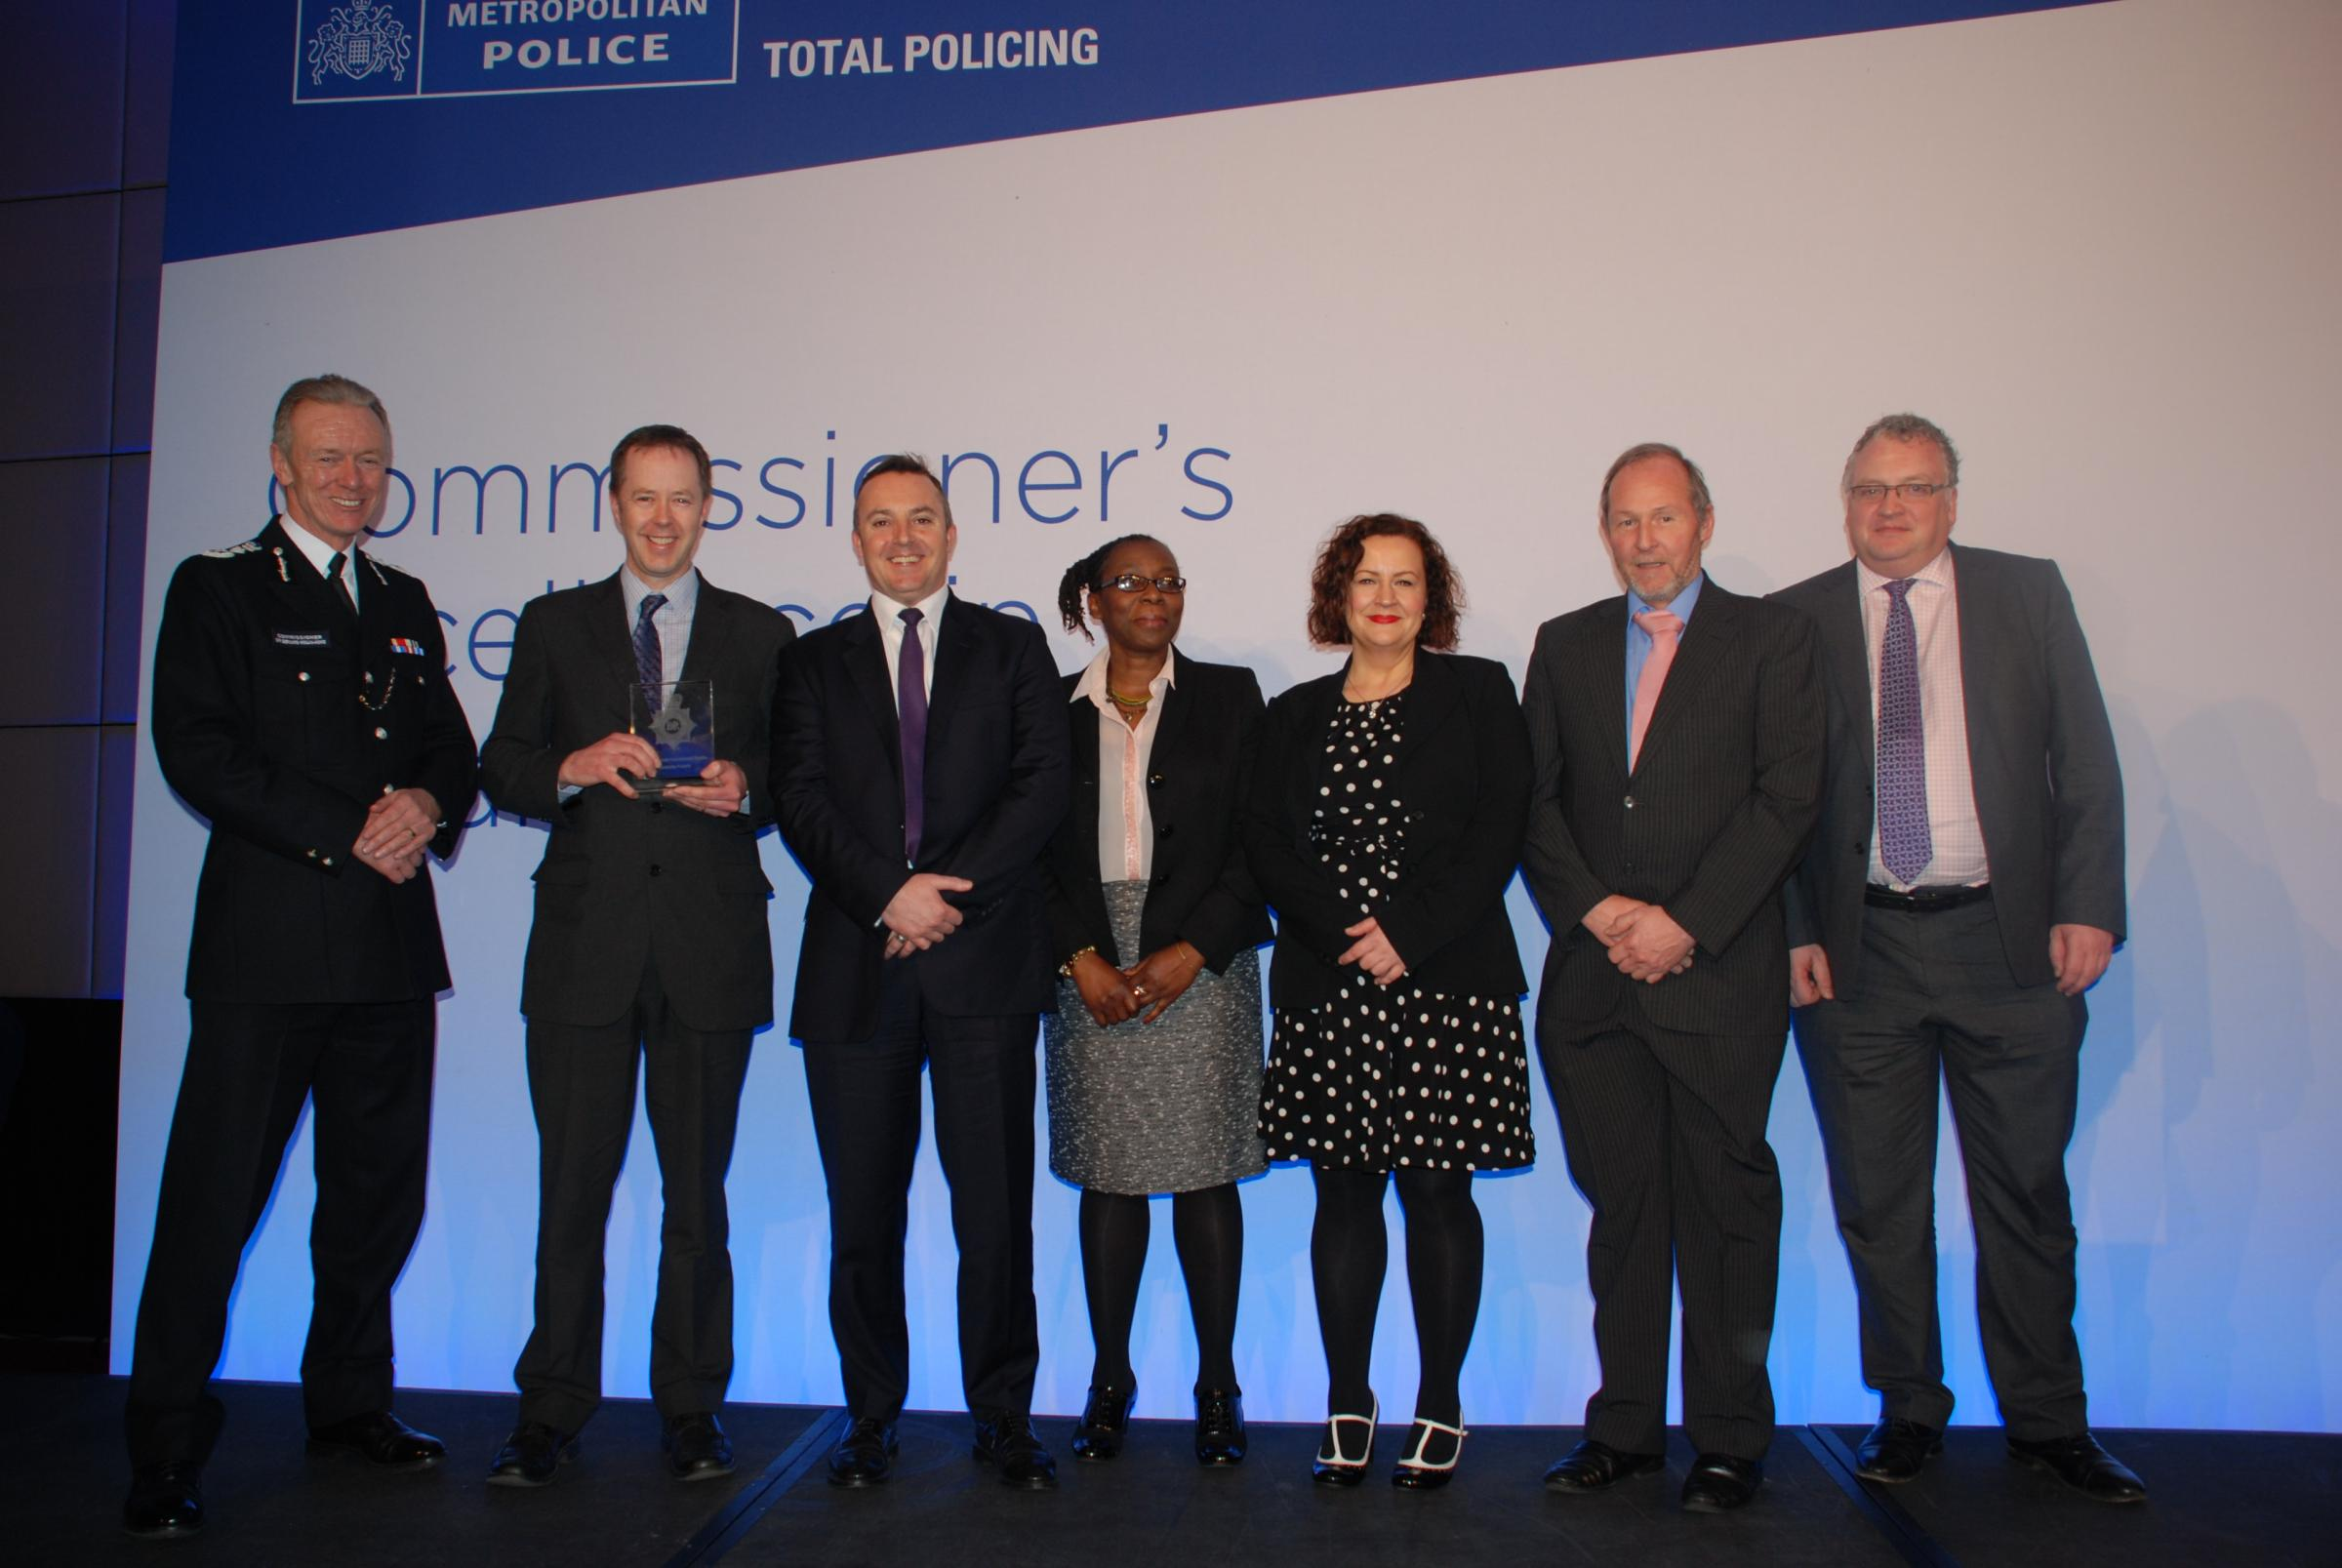 Members of the trust and met police collecting their award